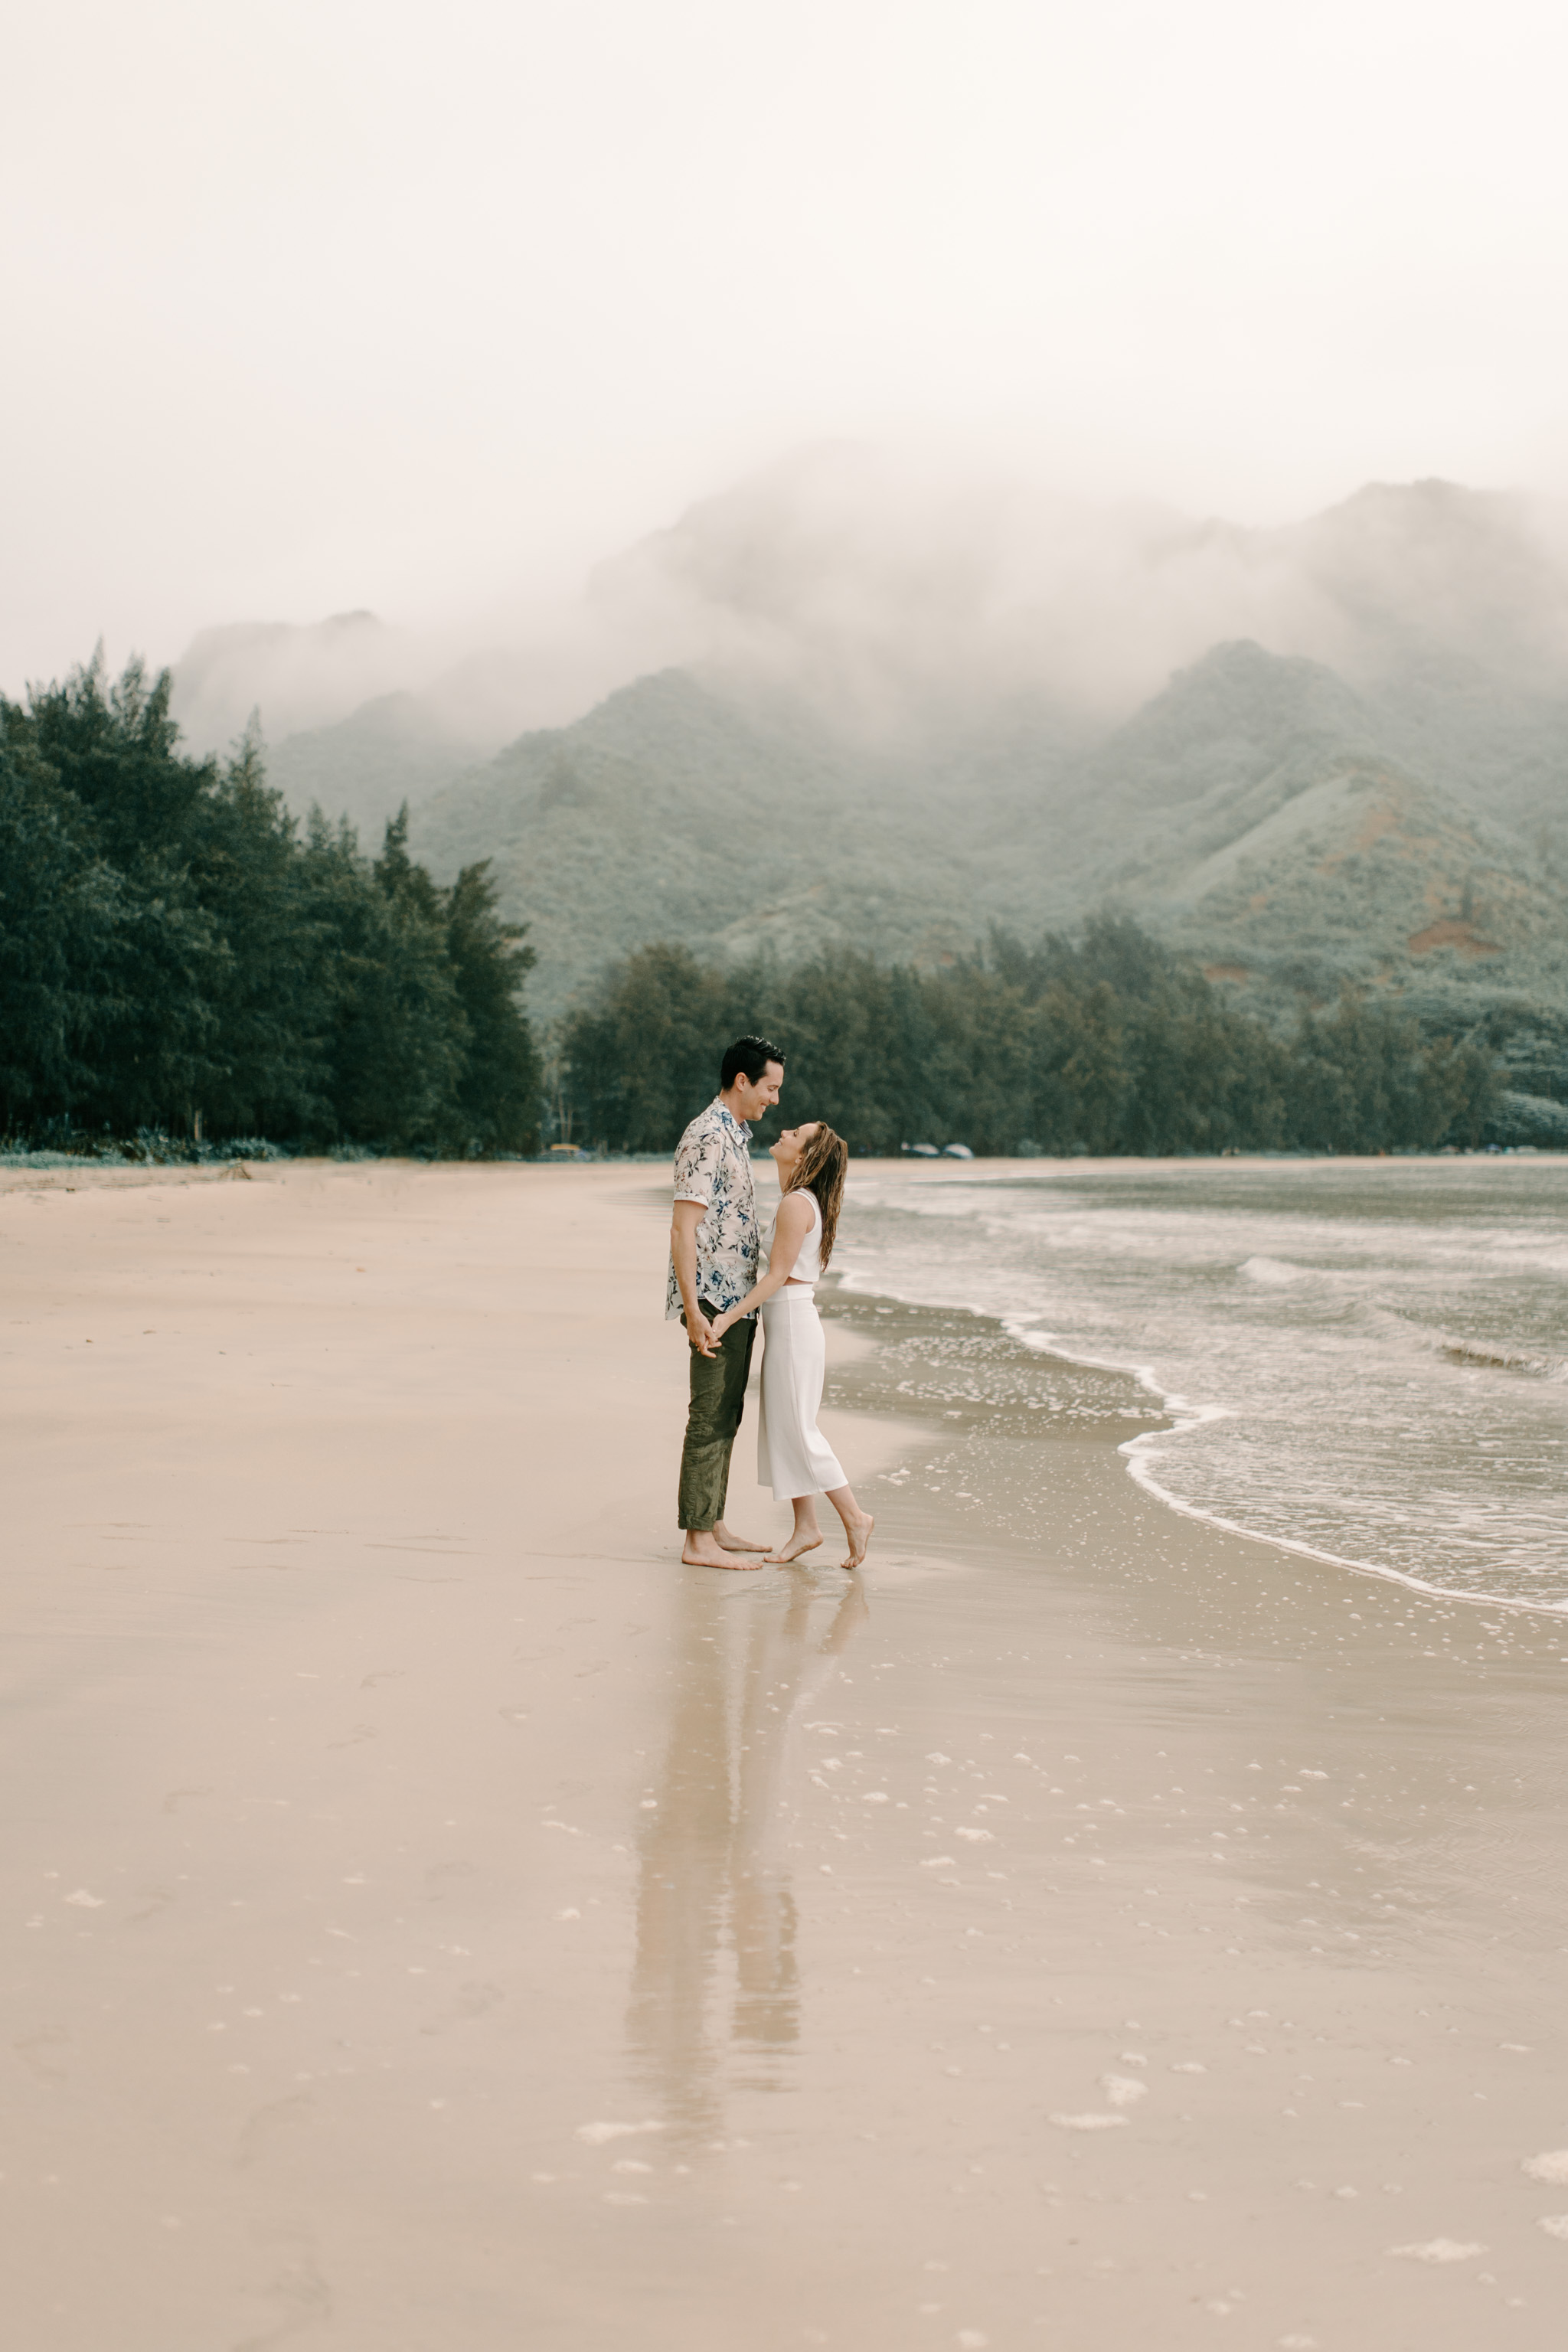 Gorgeous Rainy Hawaii Engagement Photos By Oahu Photographer Desiree Leilani